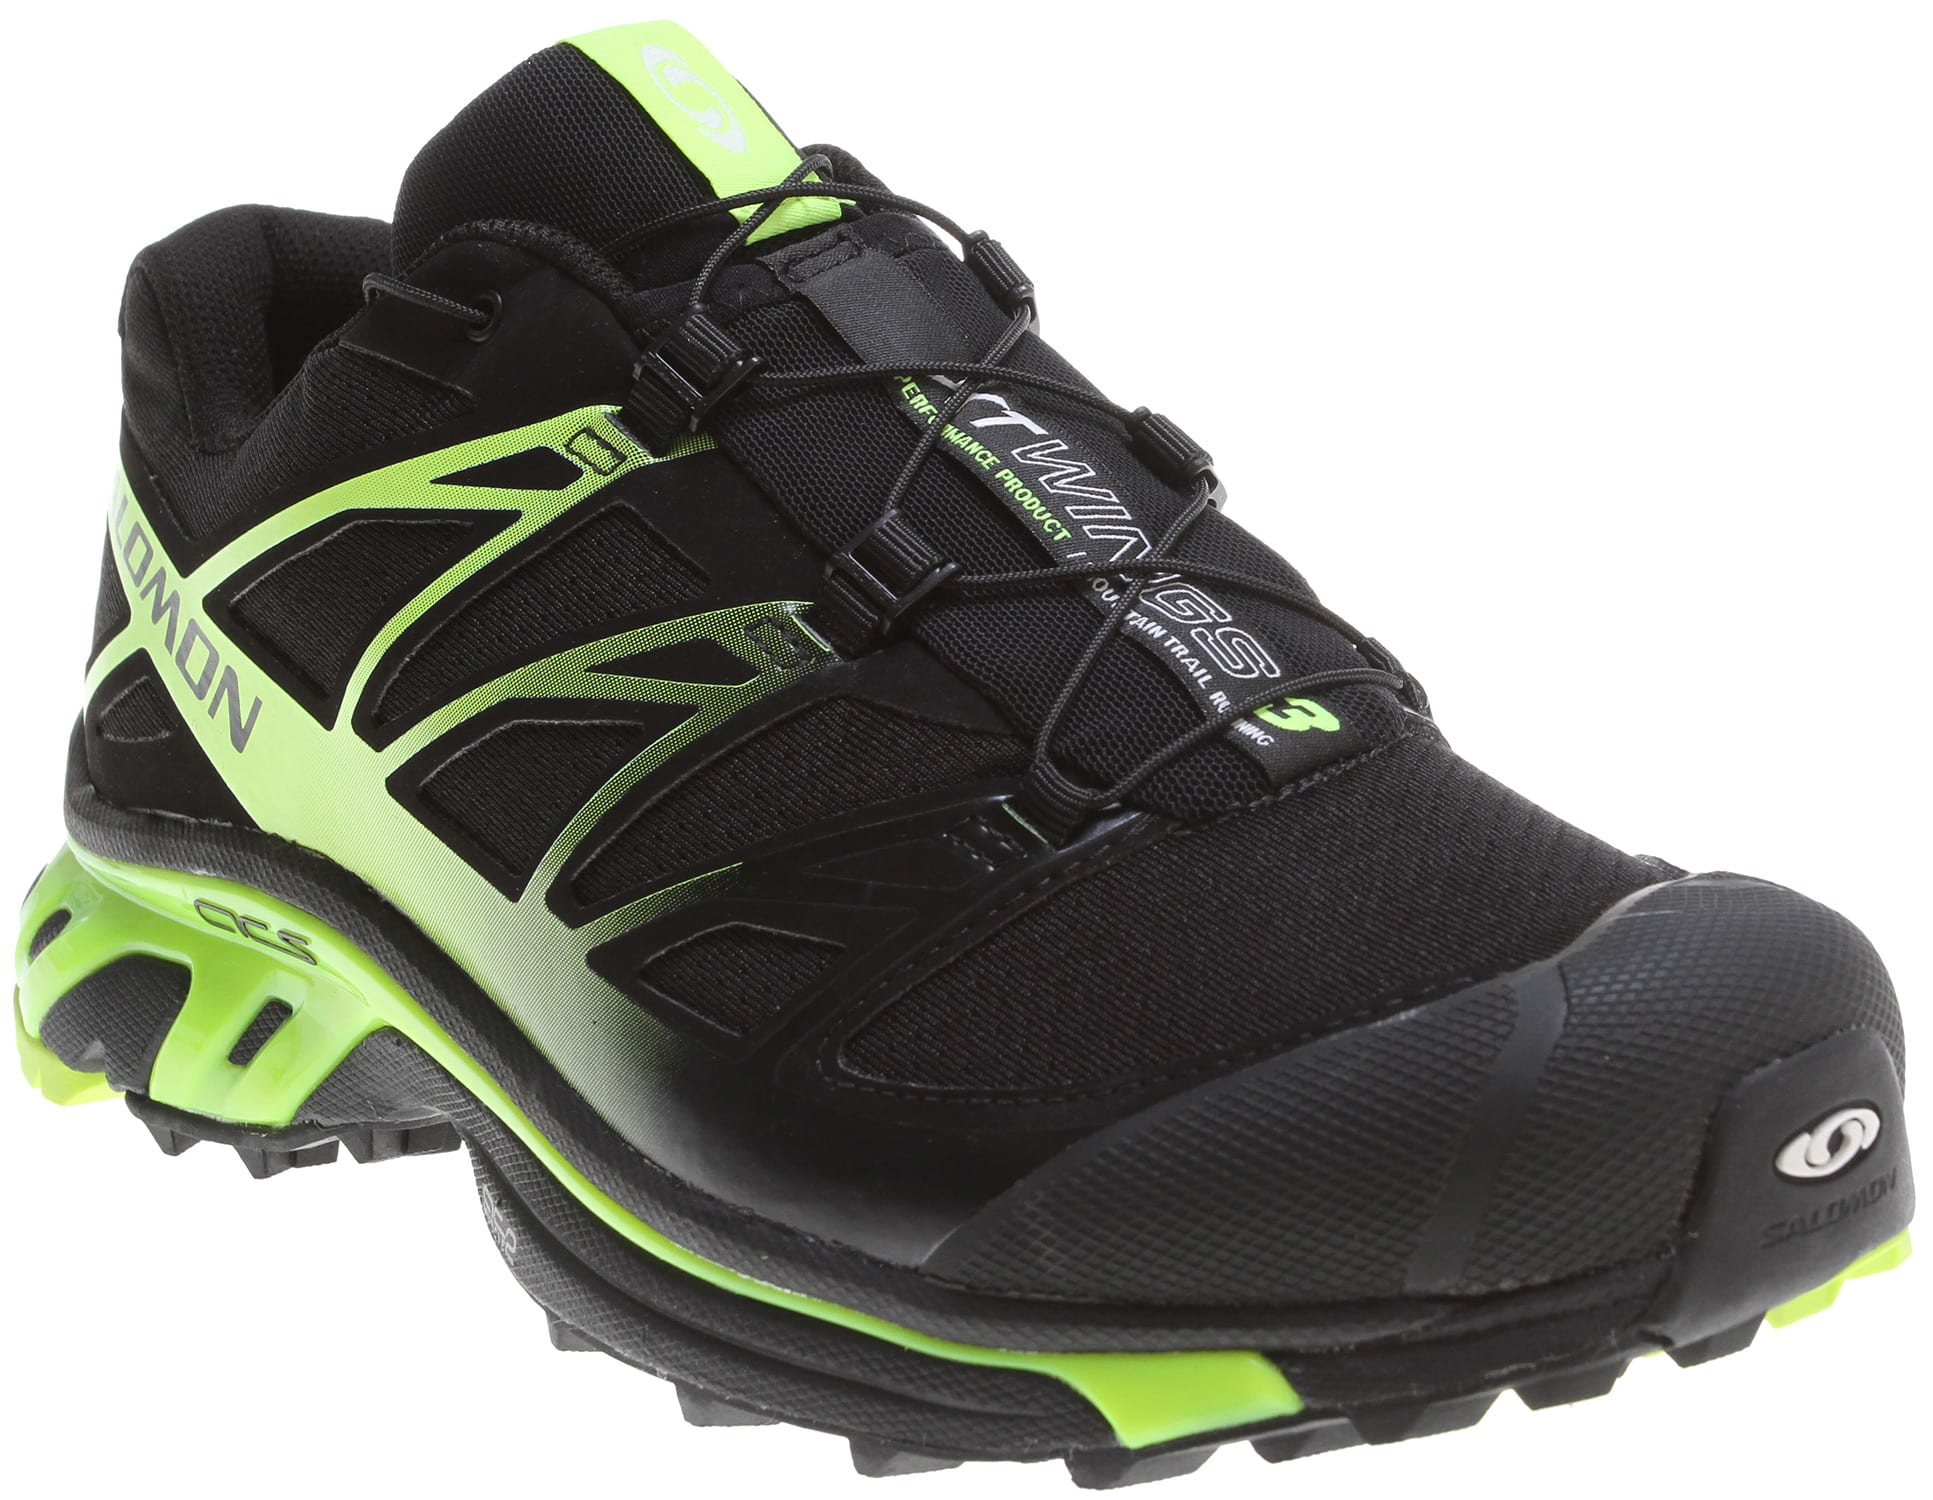 b6180a2f01f Salomon XT Wings 3 Shoes - thumbnail 2